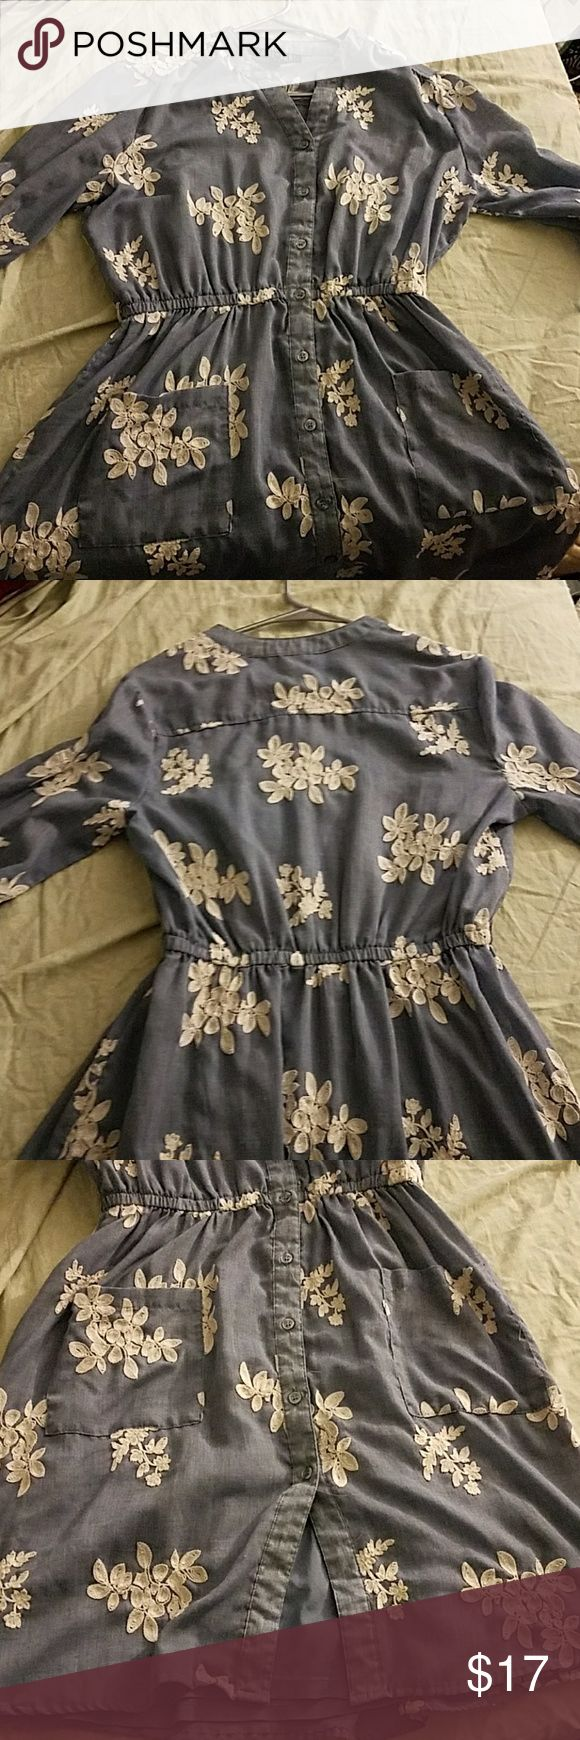 Denim Look Dress with Cream Flowers Softer than actual denim, has a detached underdress that is optional depending on the occasion In great condition  Bundle with any other item for a private discount on both! sami + dani Dresses Long Sleeve